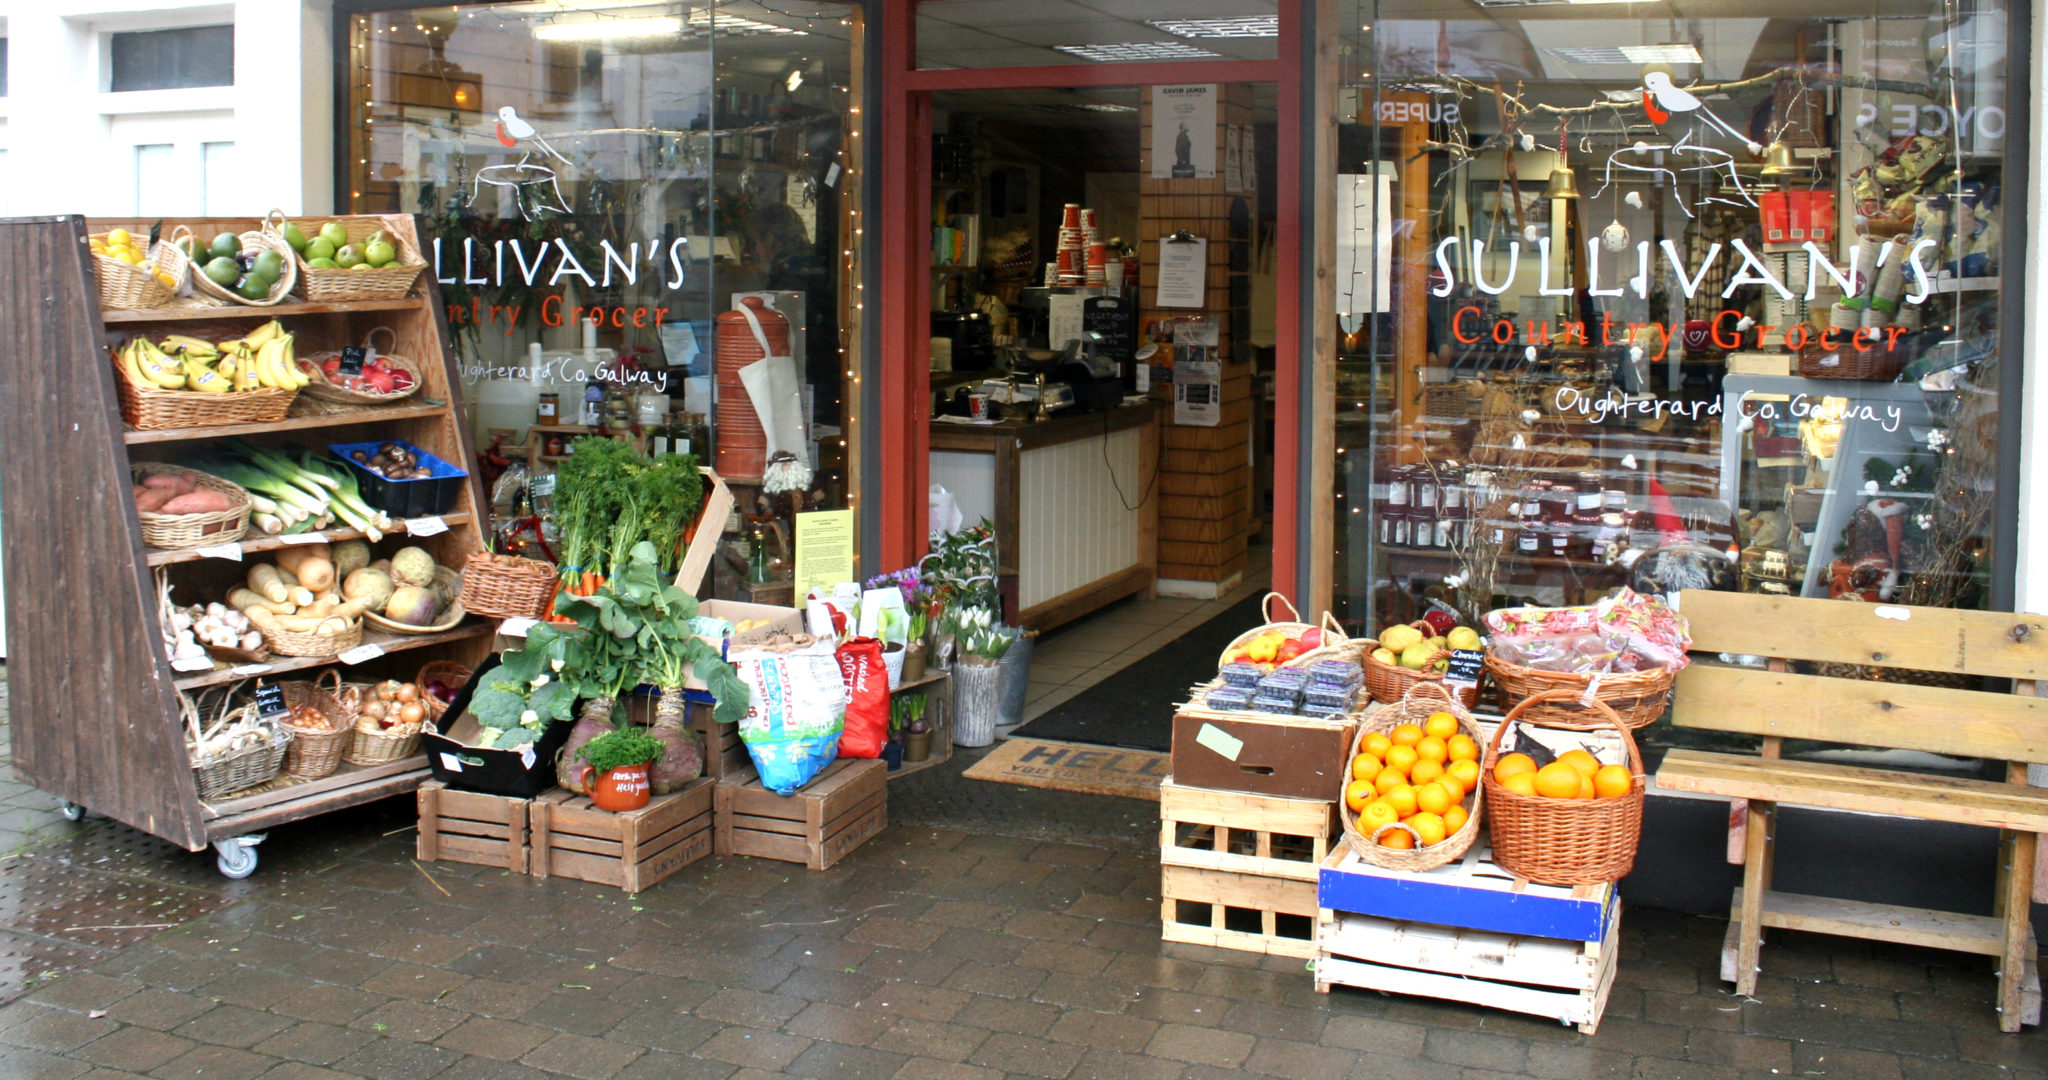 Sullivans Country Grocer Fresh Fruit and Vegetables